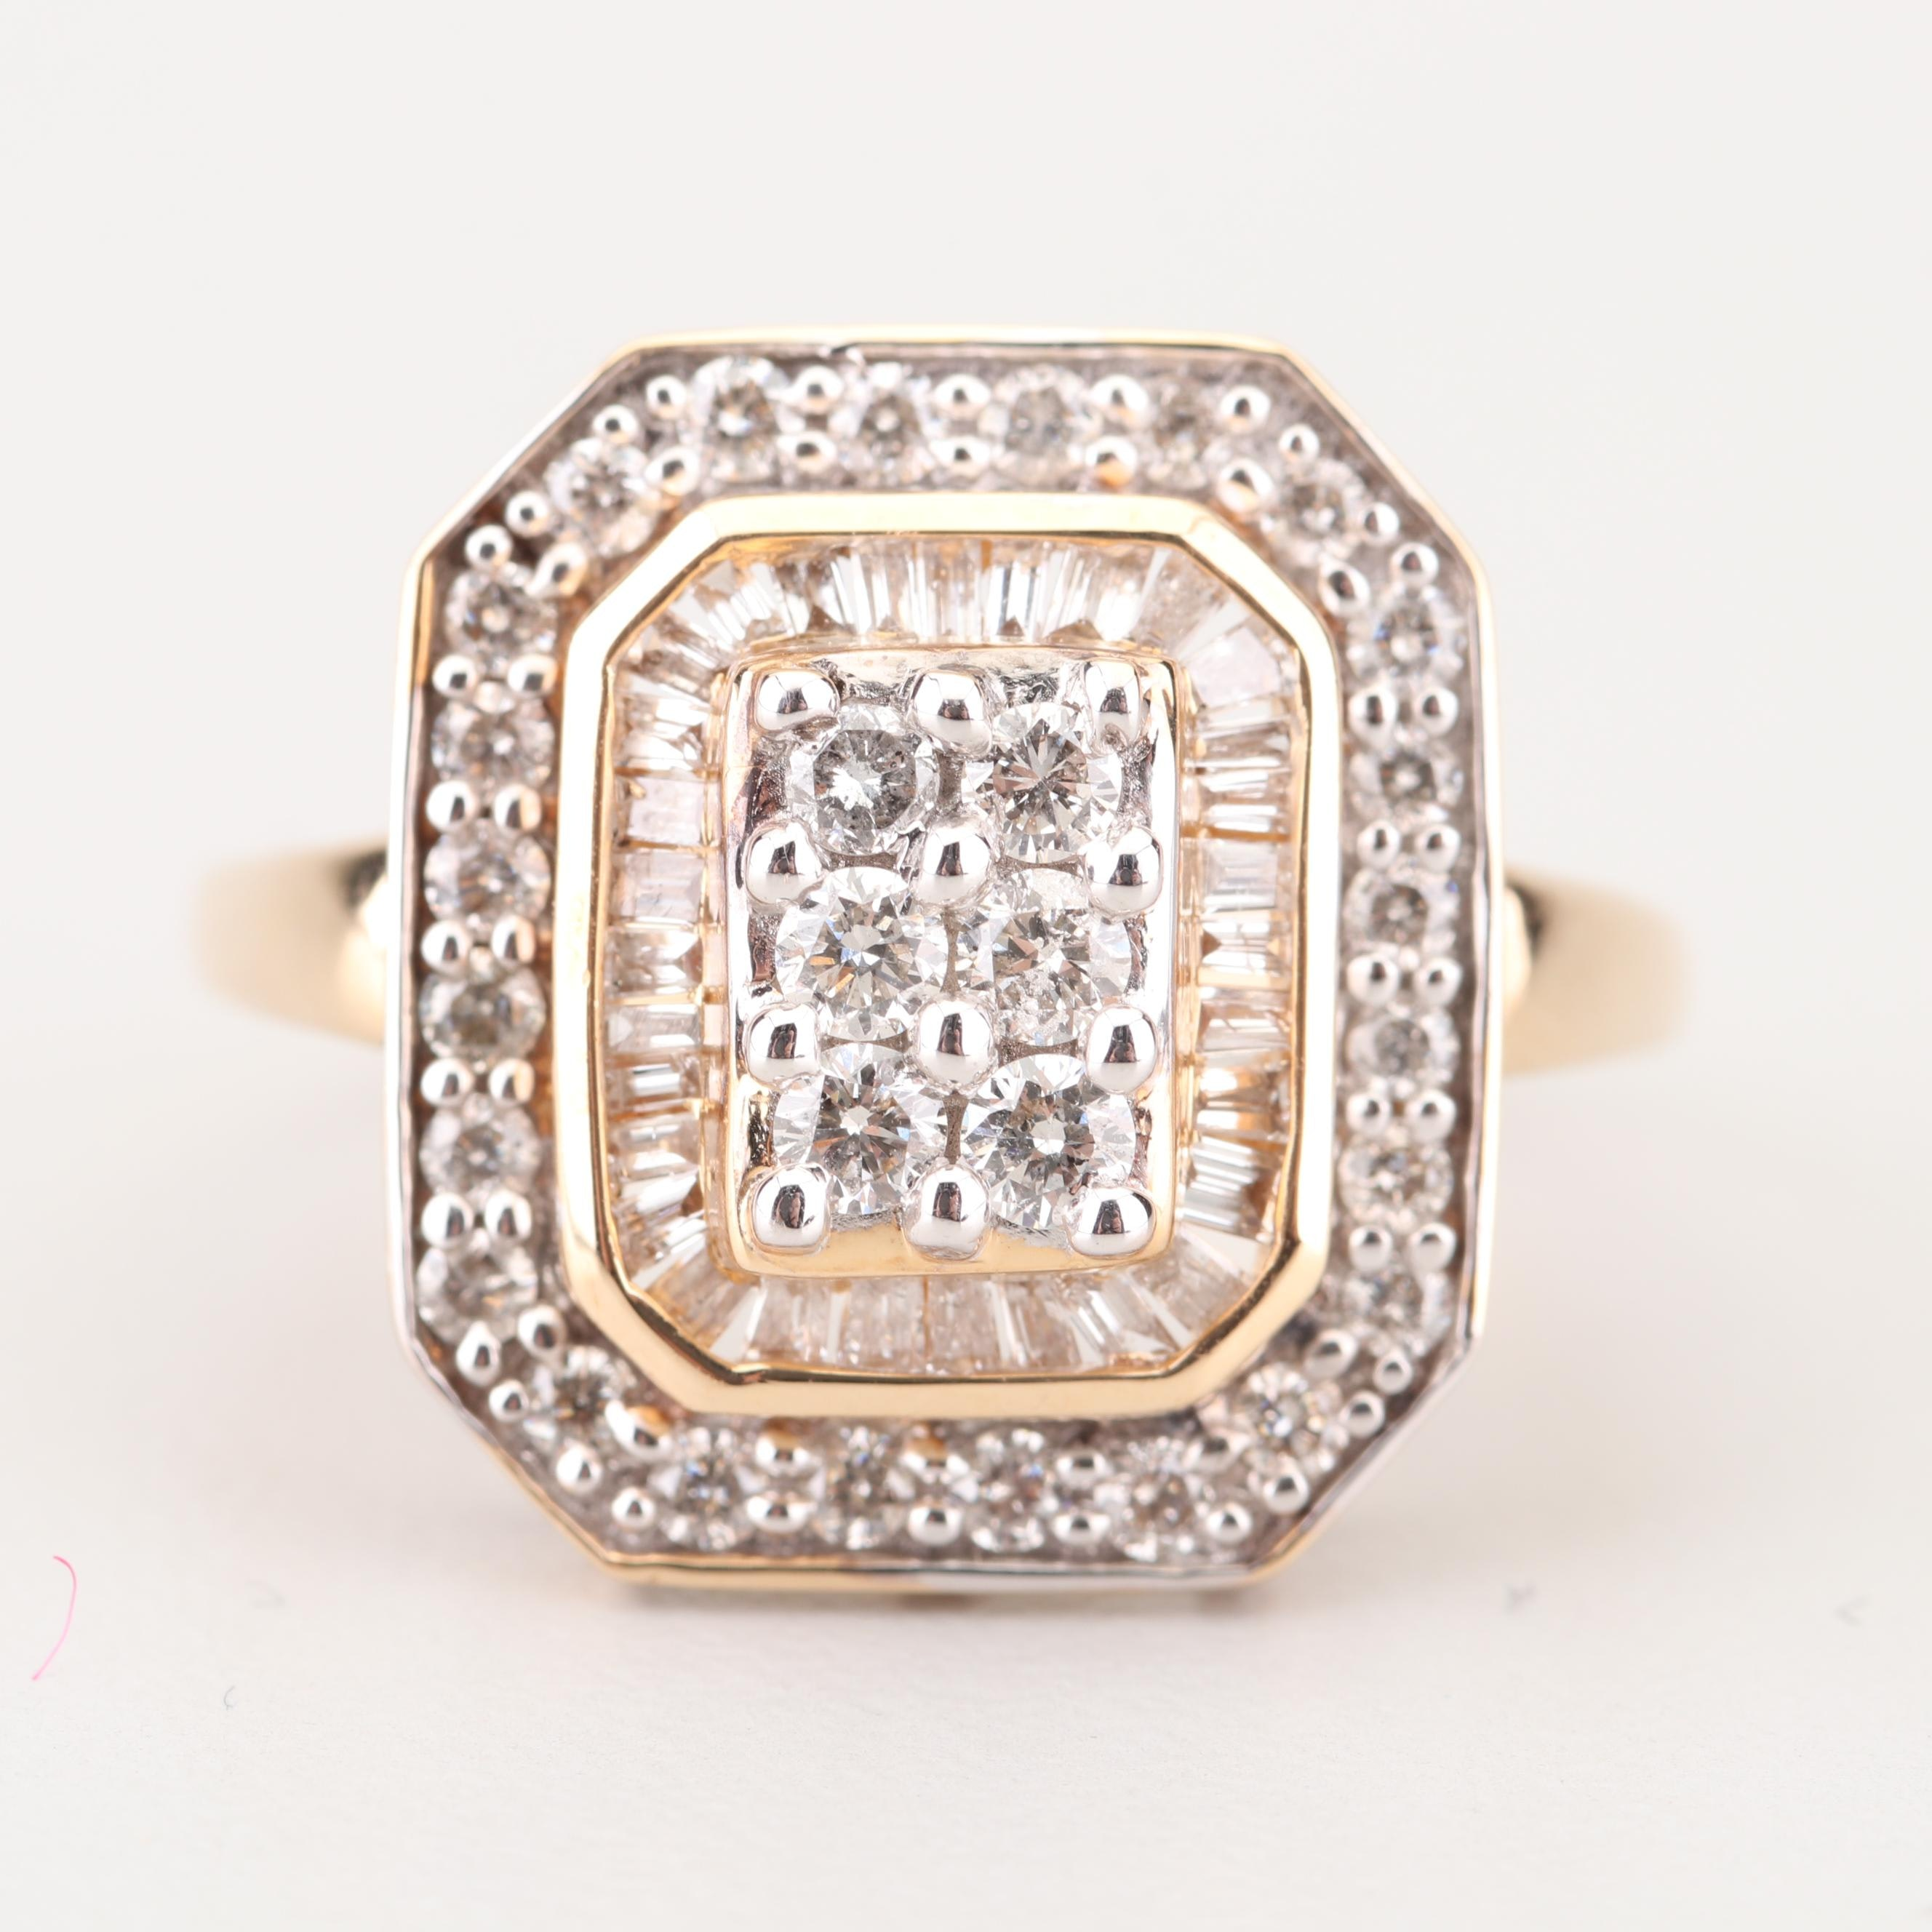 14K Yellow Gold 1.03 CTW Diamond Ring